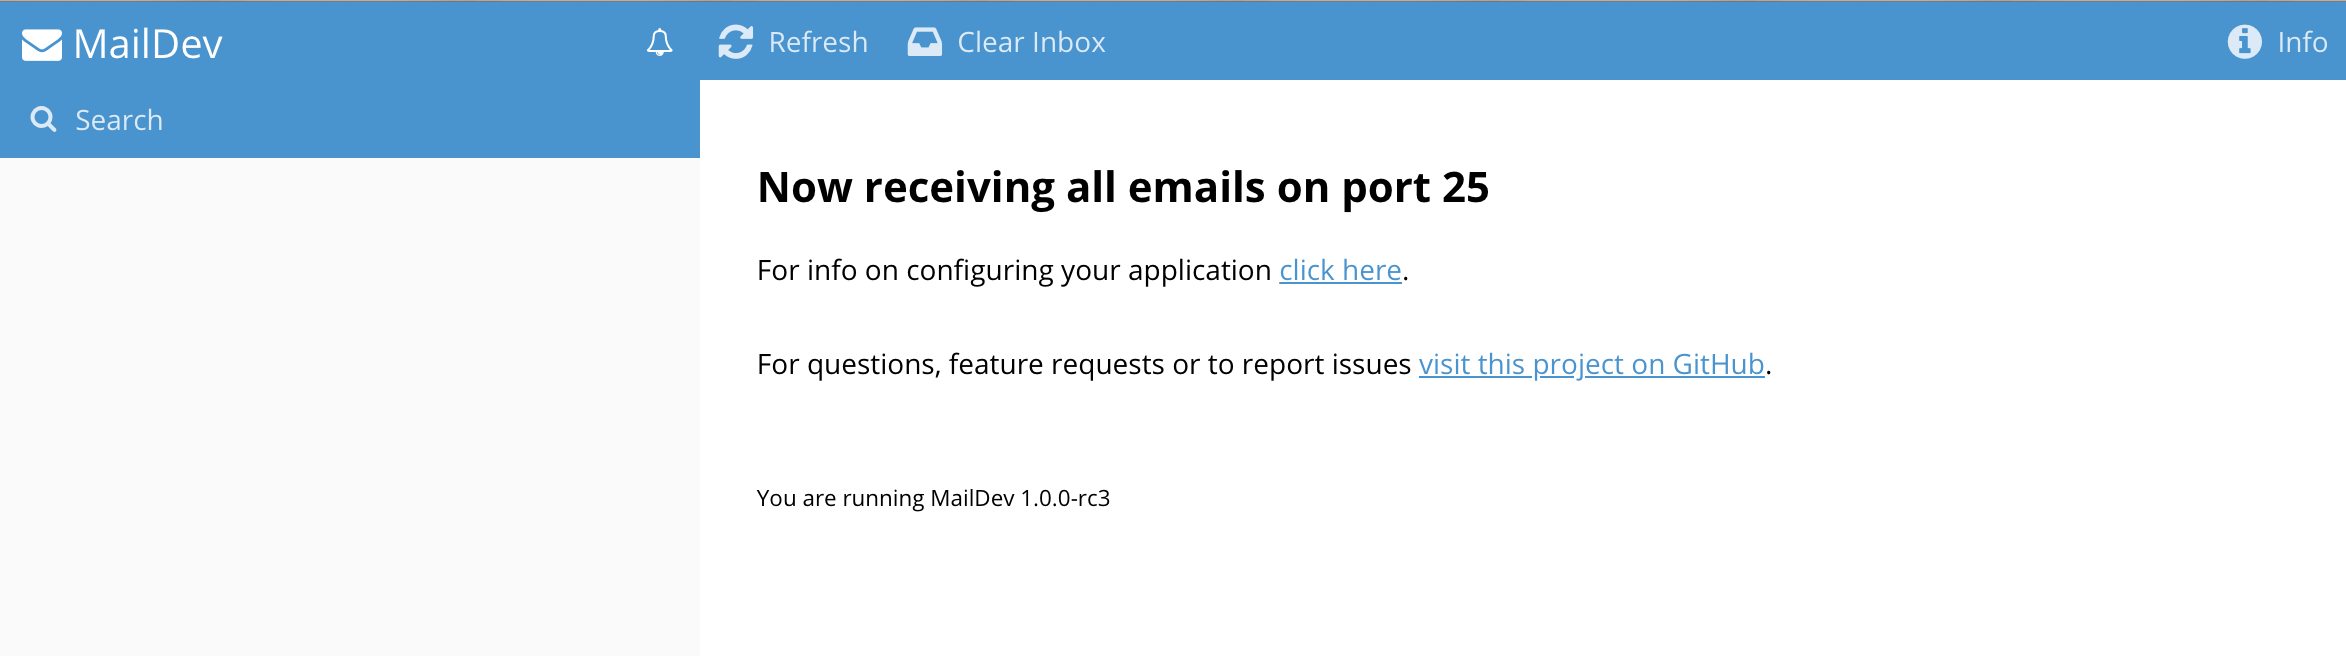 MailDev.png